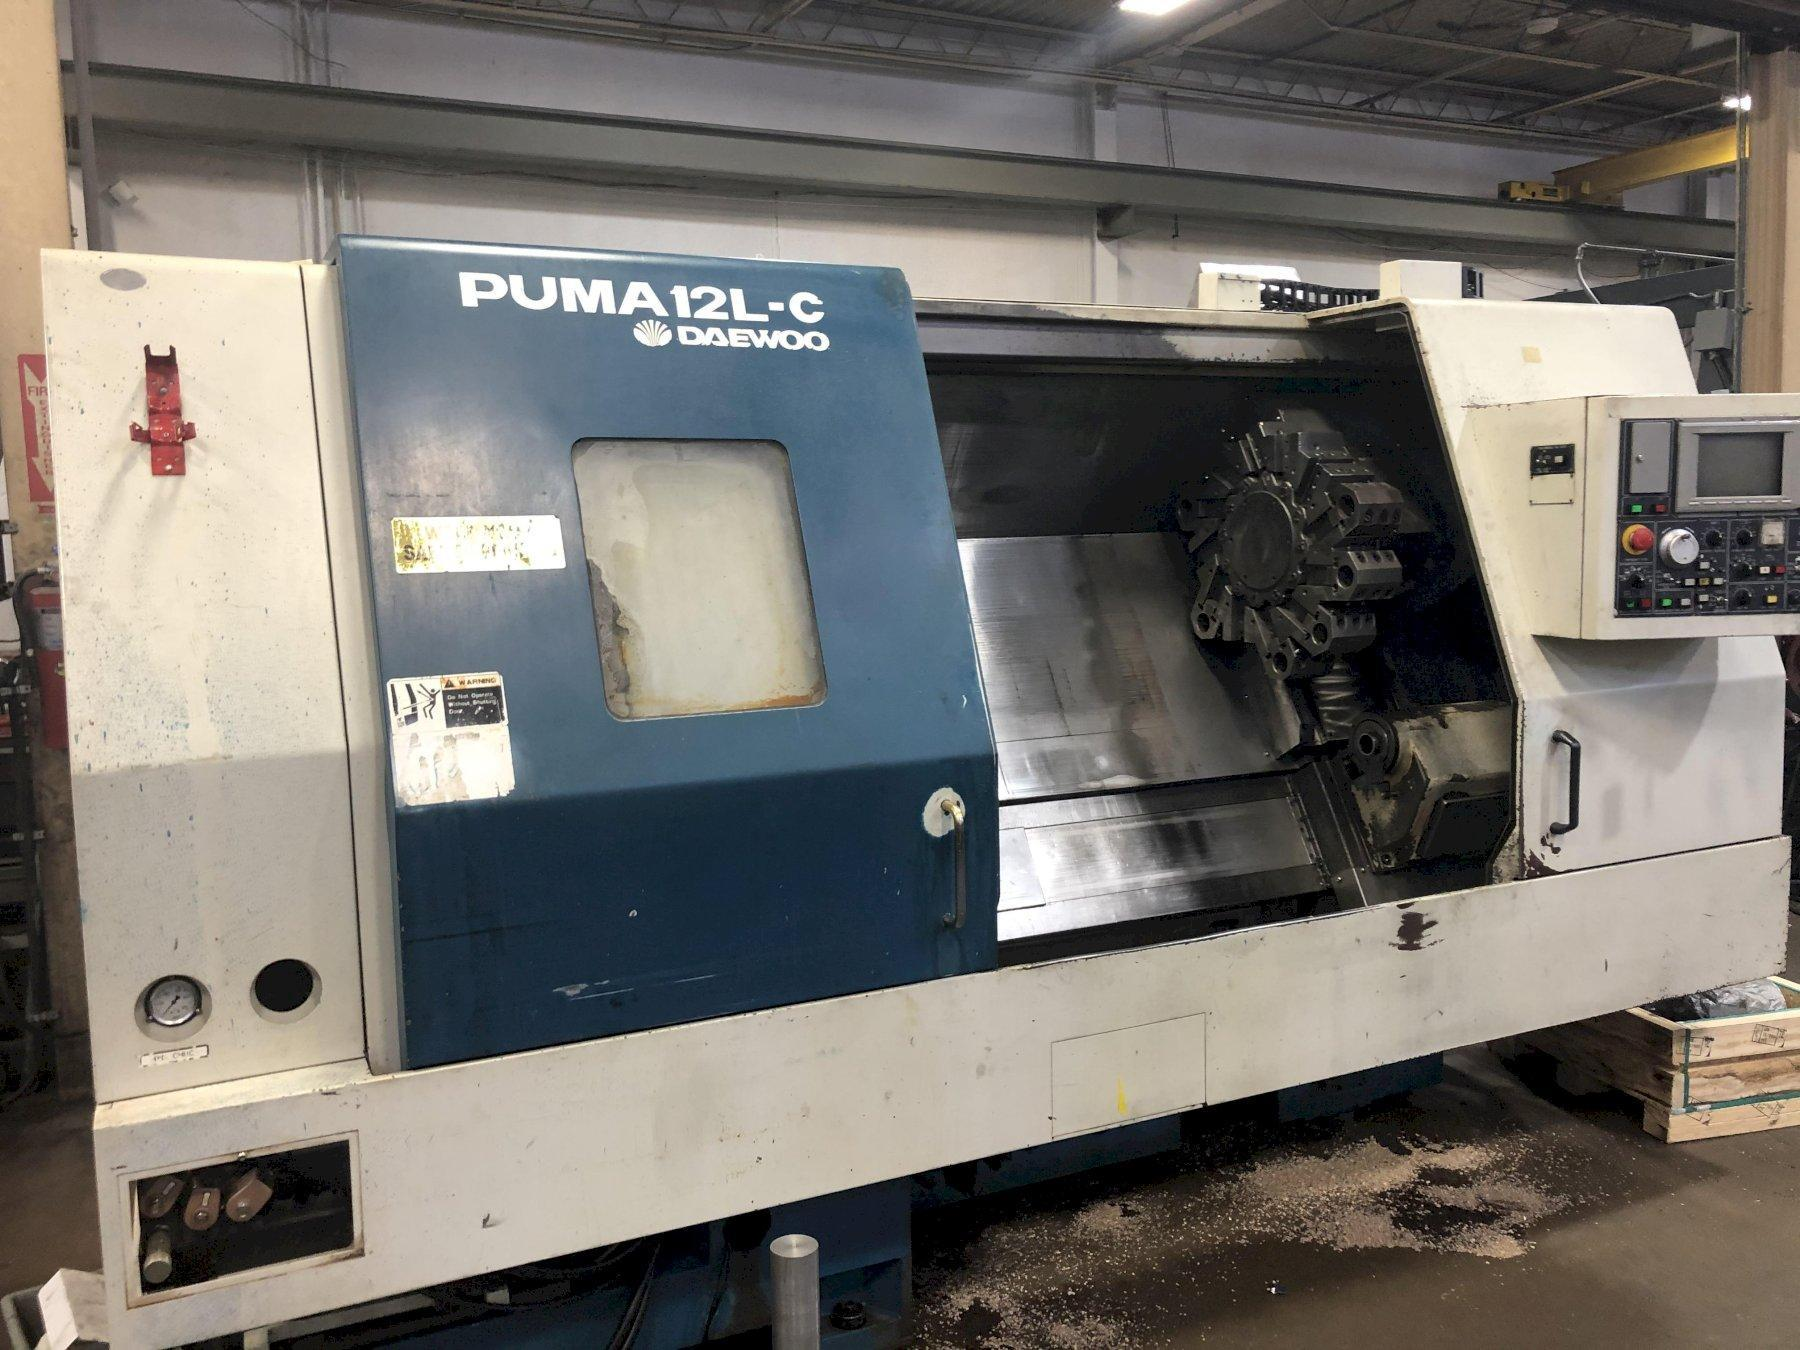 Daewoo Puma 12L-C CNC 2-Axis Turning Center